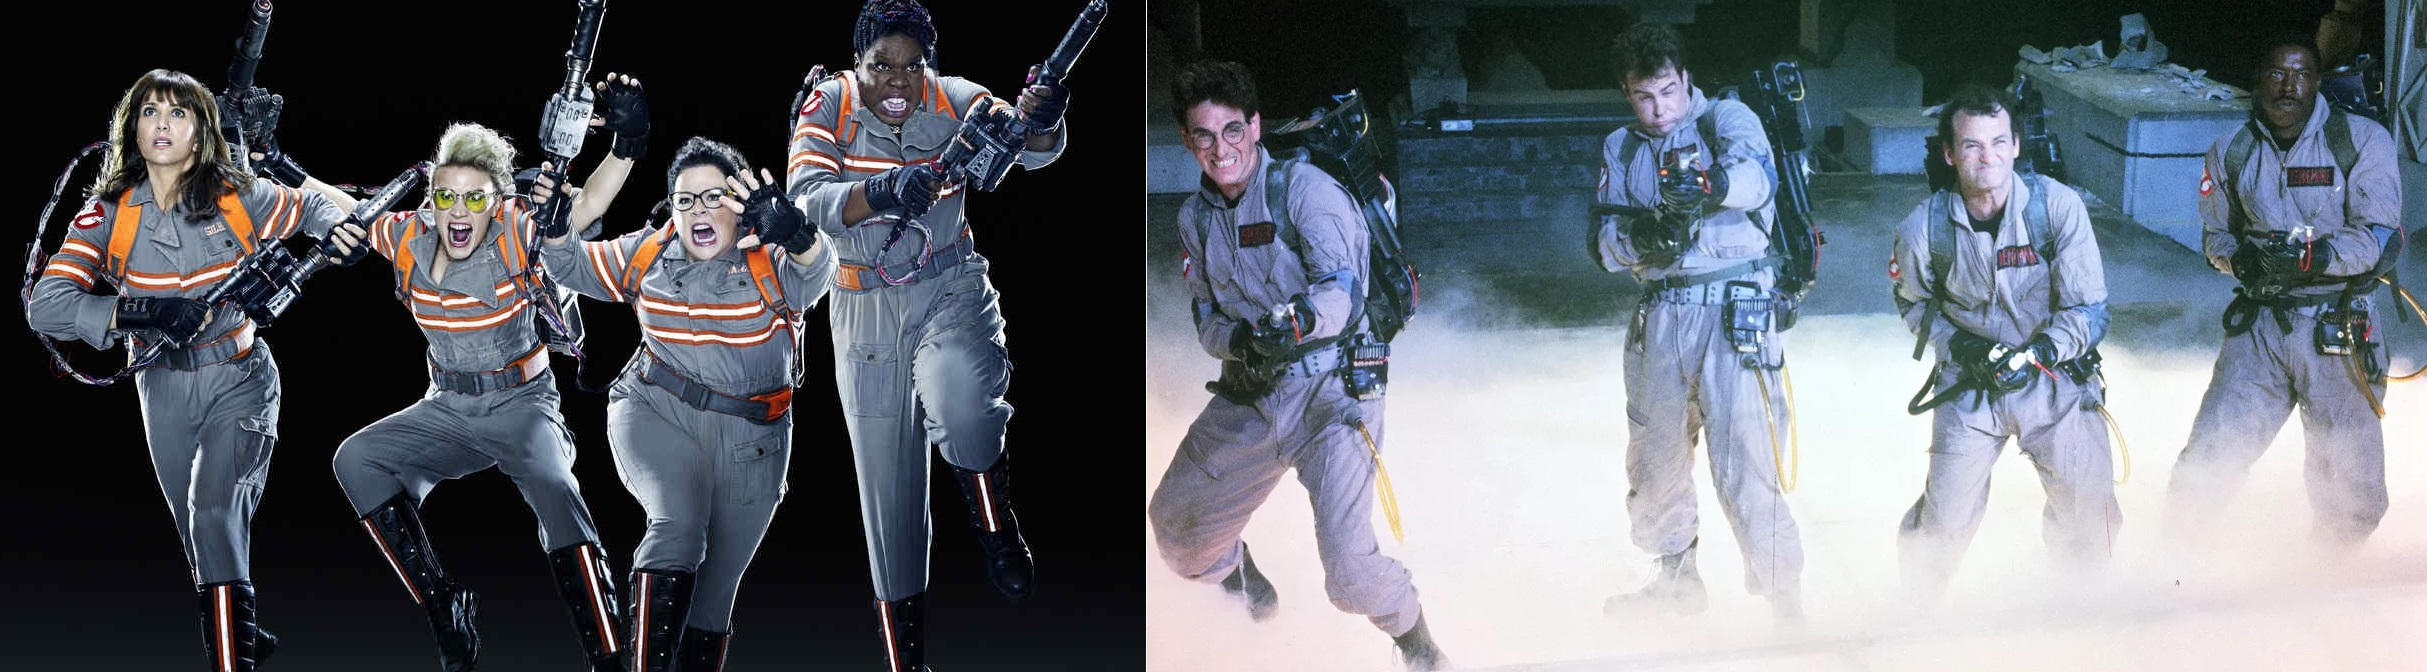 GHOSTBUSTERSCD10